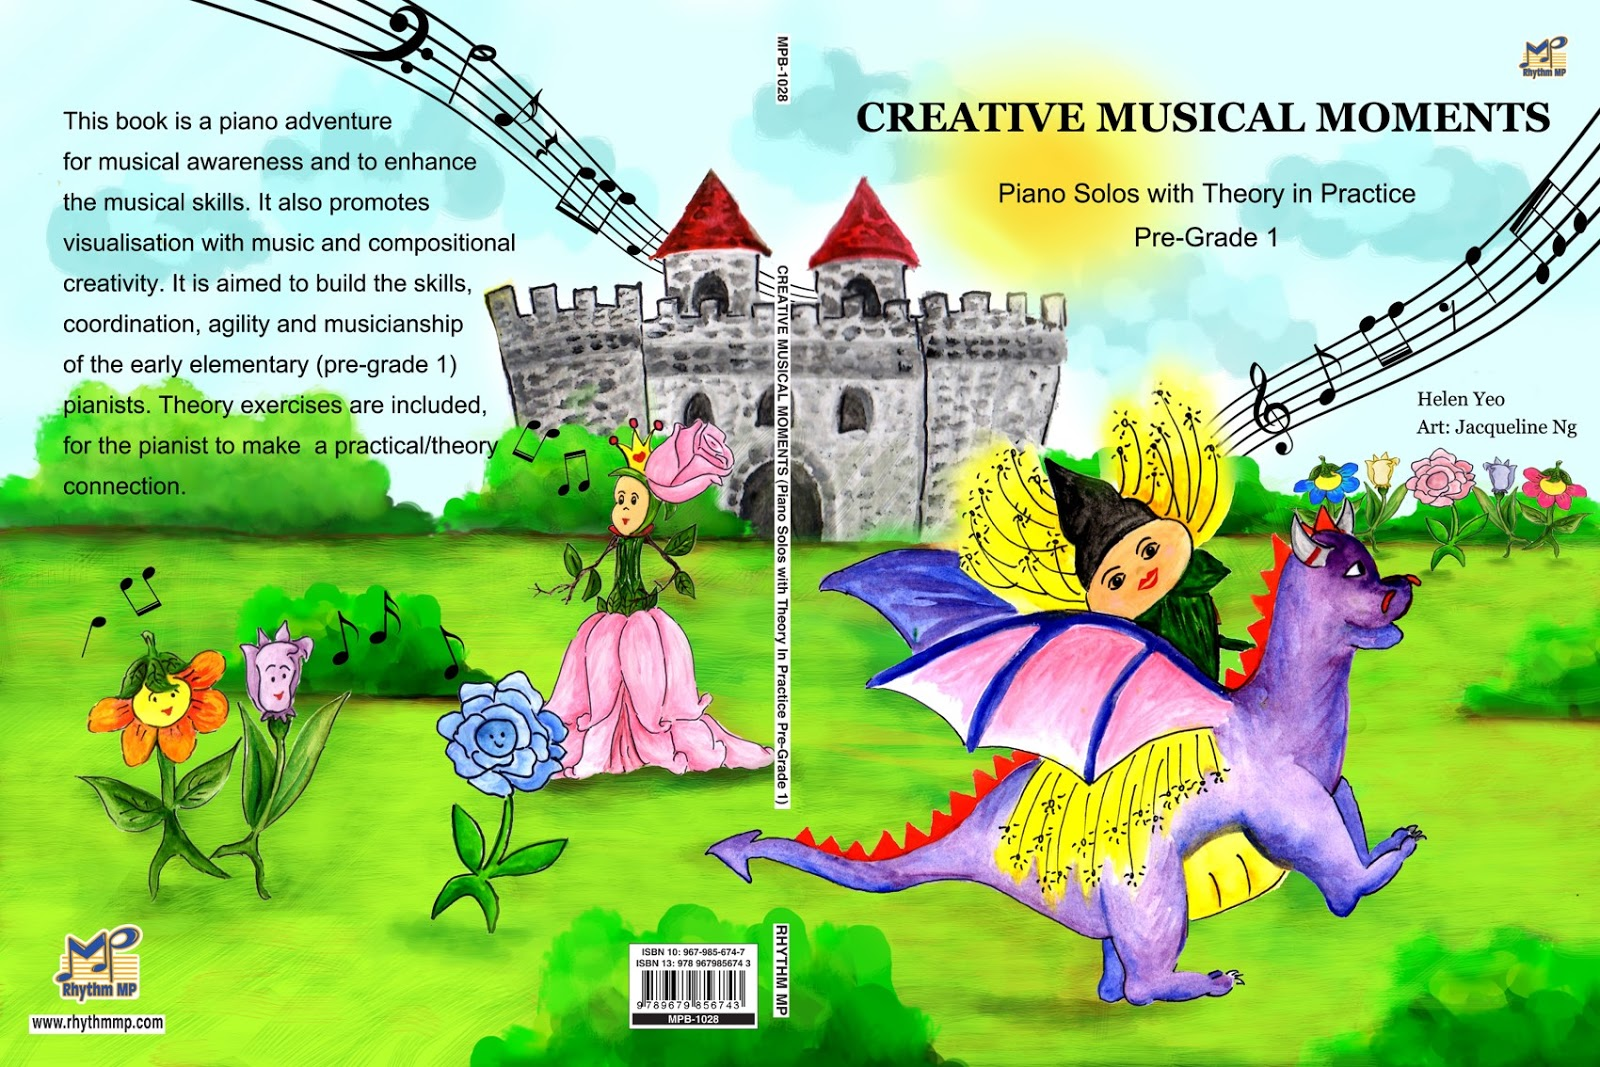 medium resolution of Rhythm MP • the music page: Creative Musical Moments